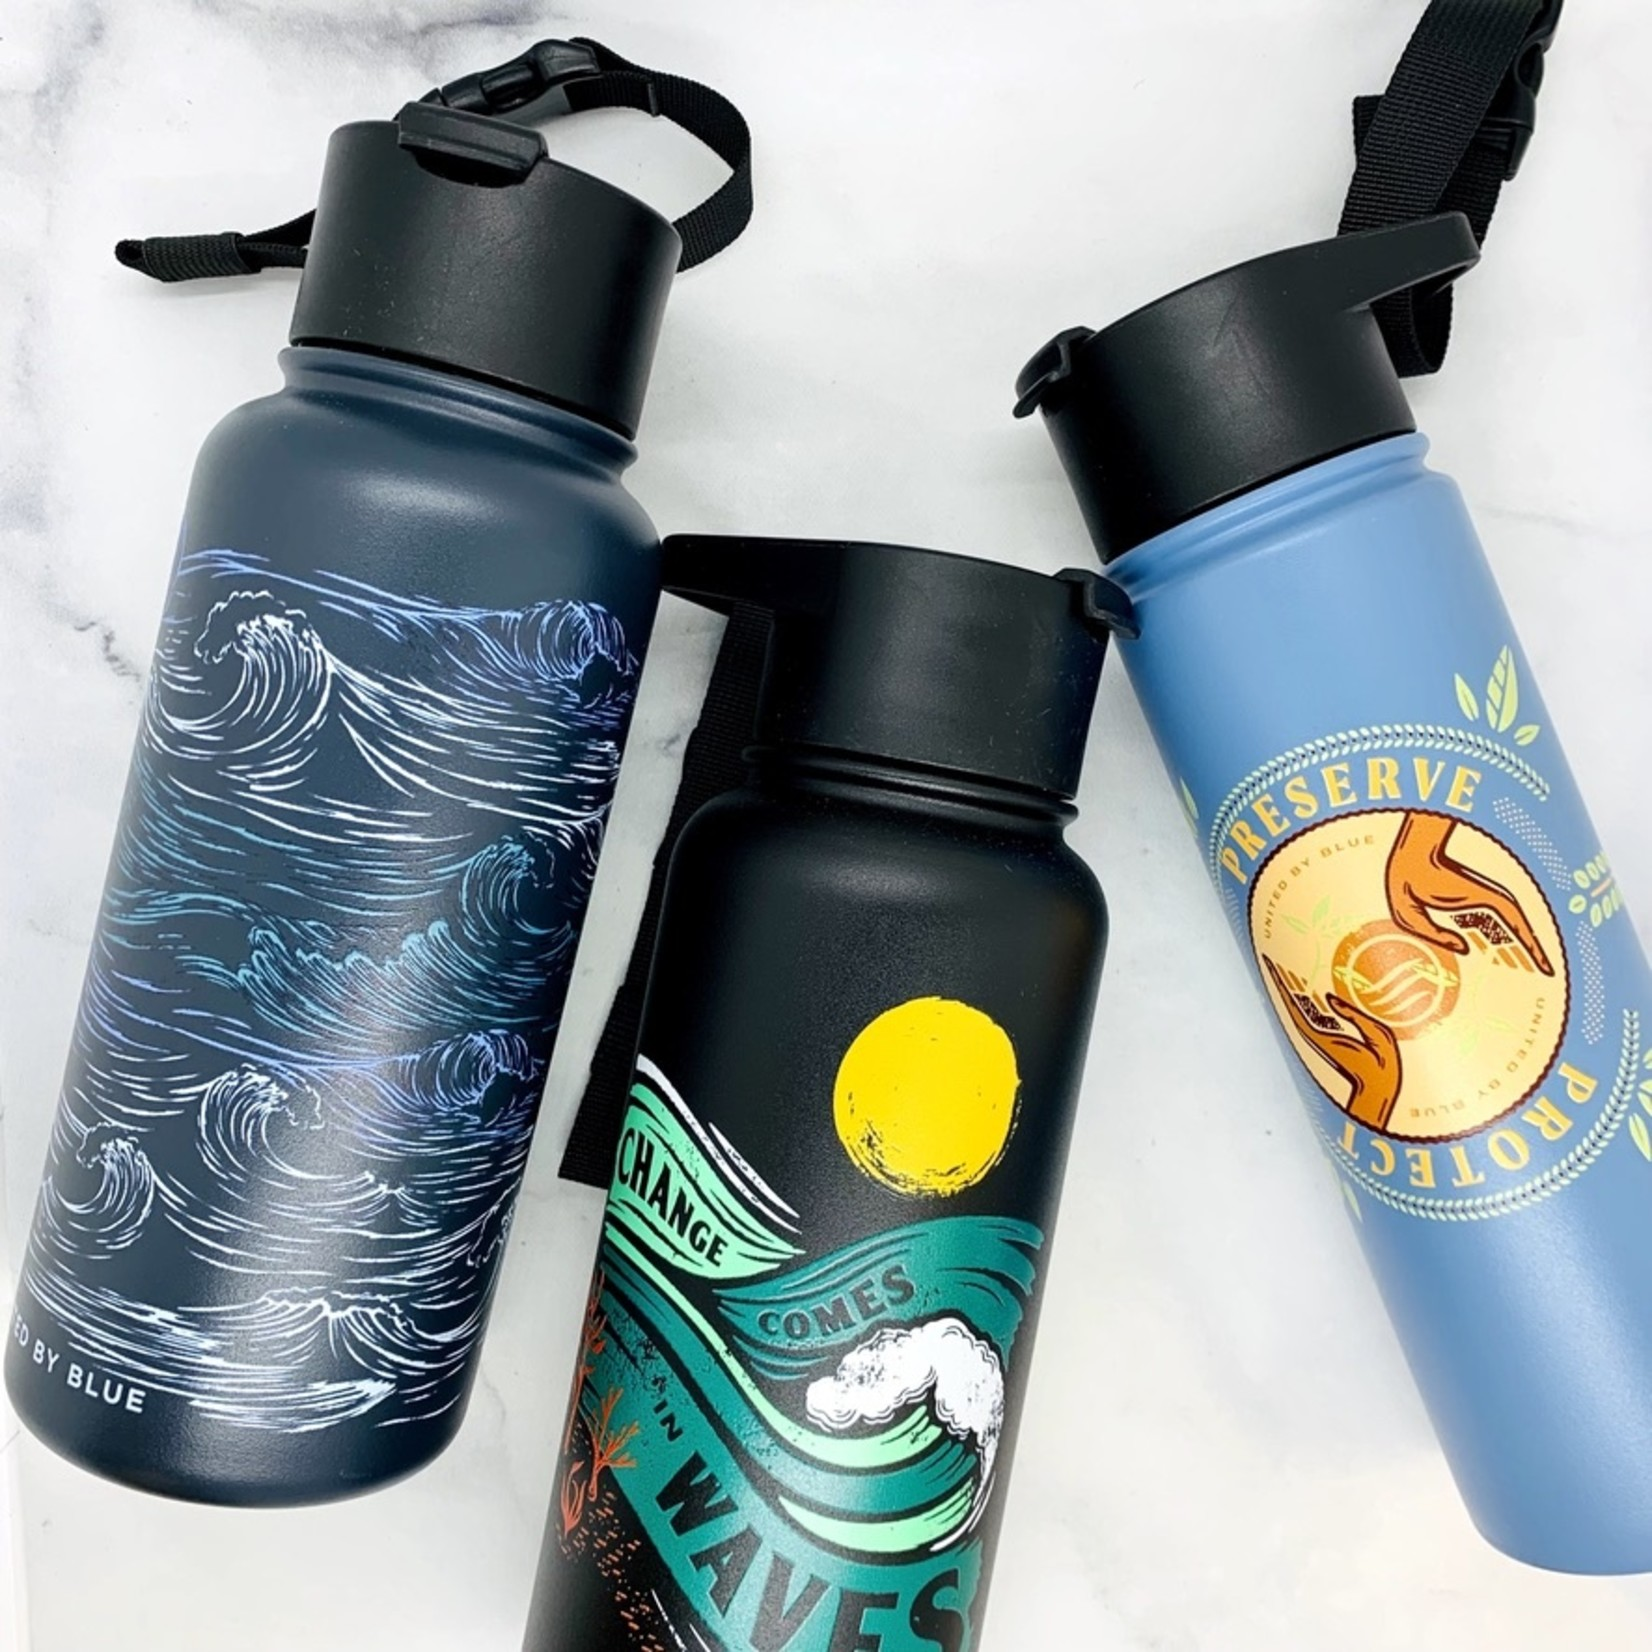 United By Blue Stainless Steel Water Bottle